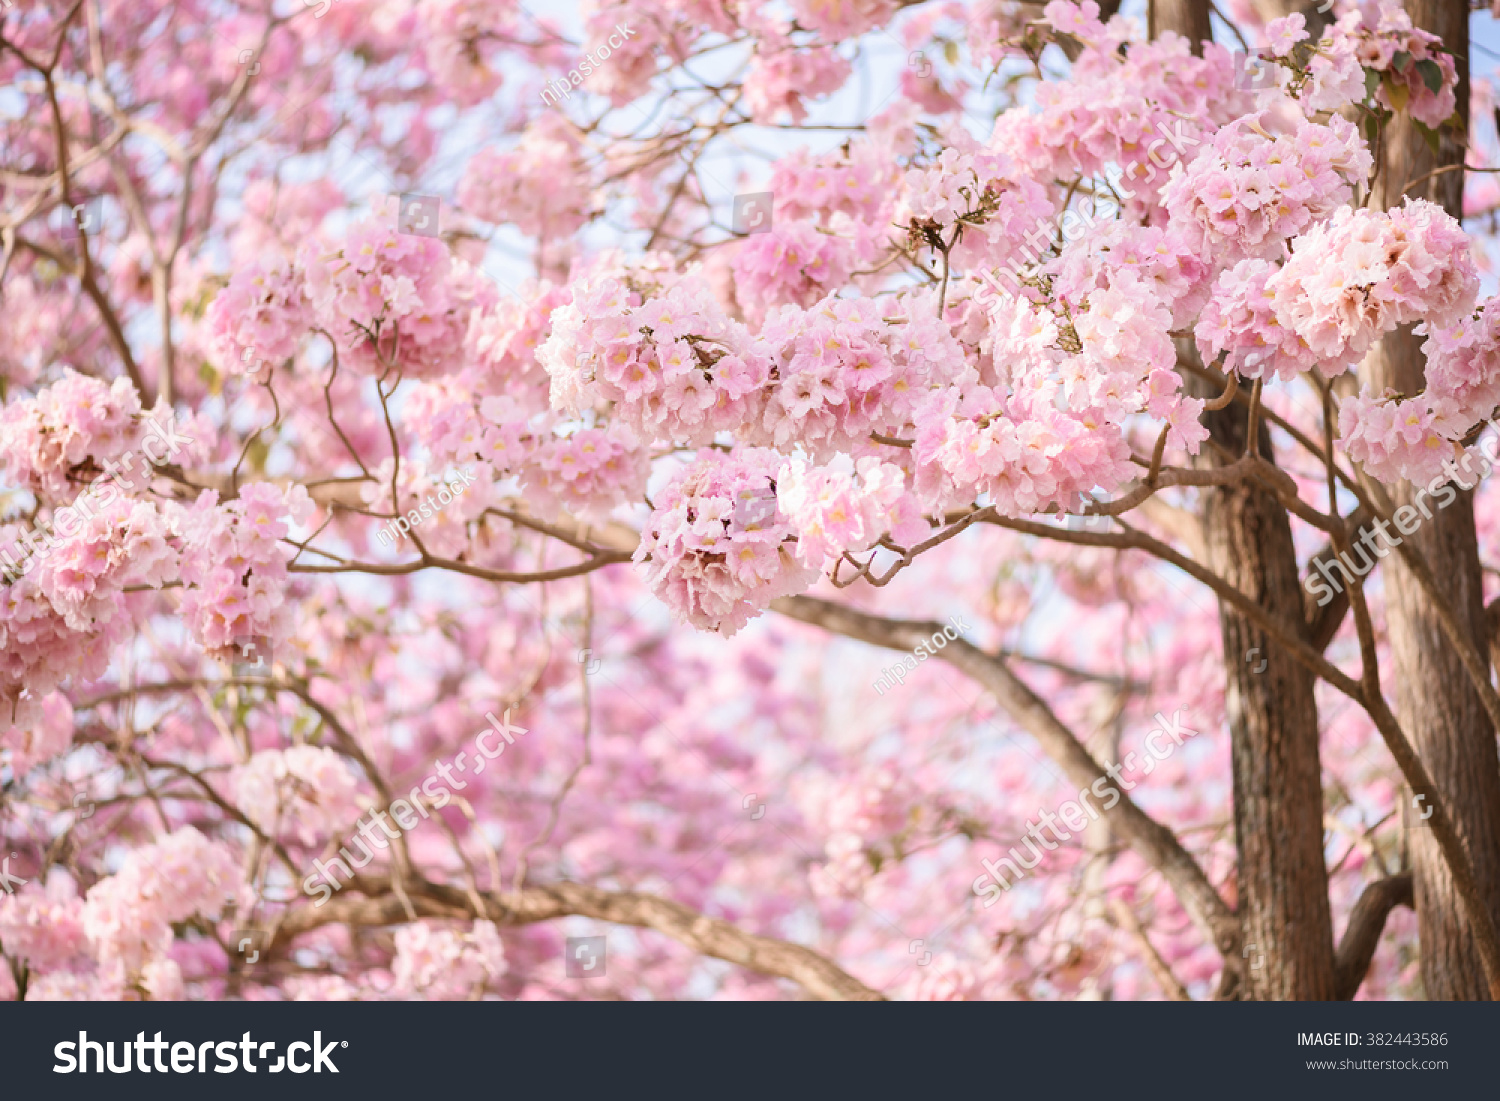 Royalty Free Tabebuia Rosea Is A Pink Flower 382443586 Stock Photo